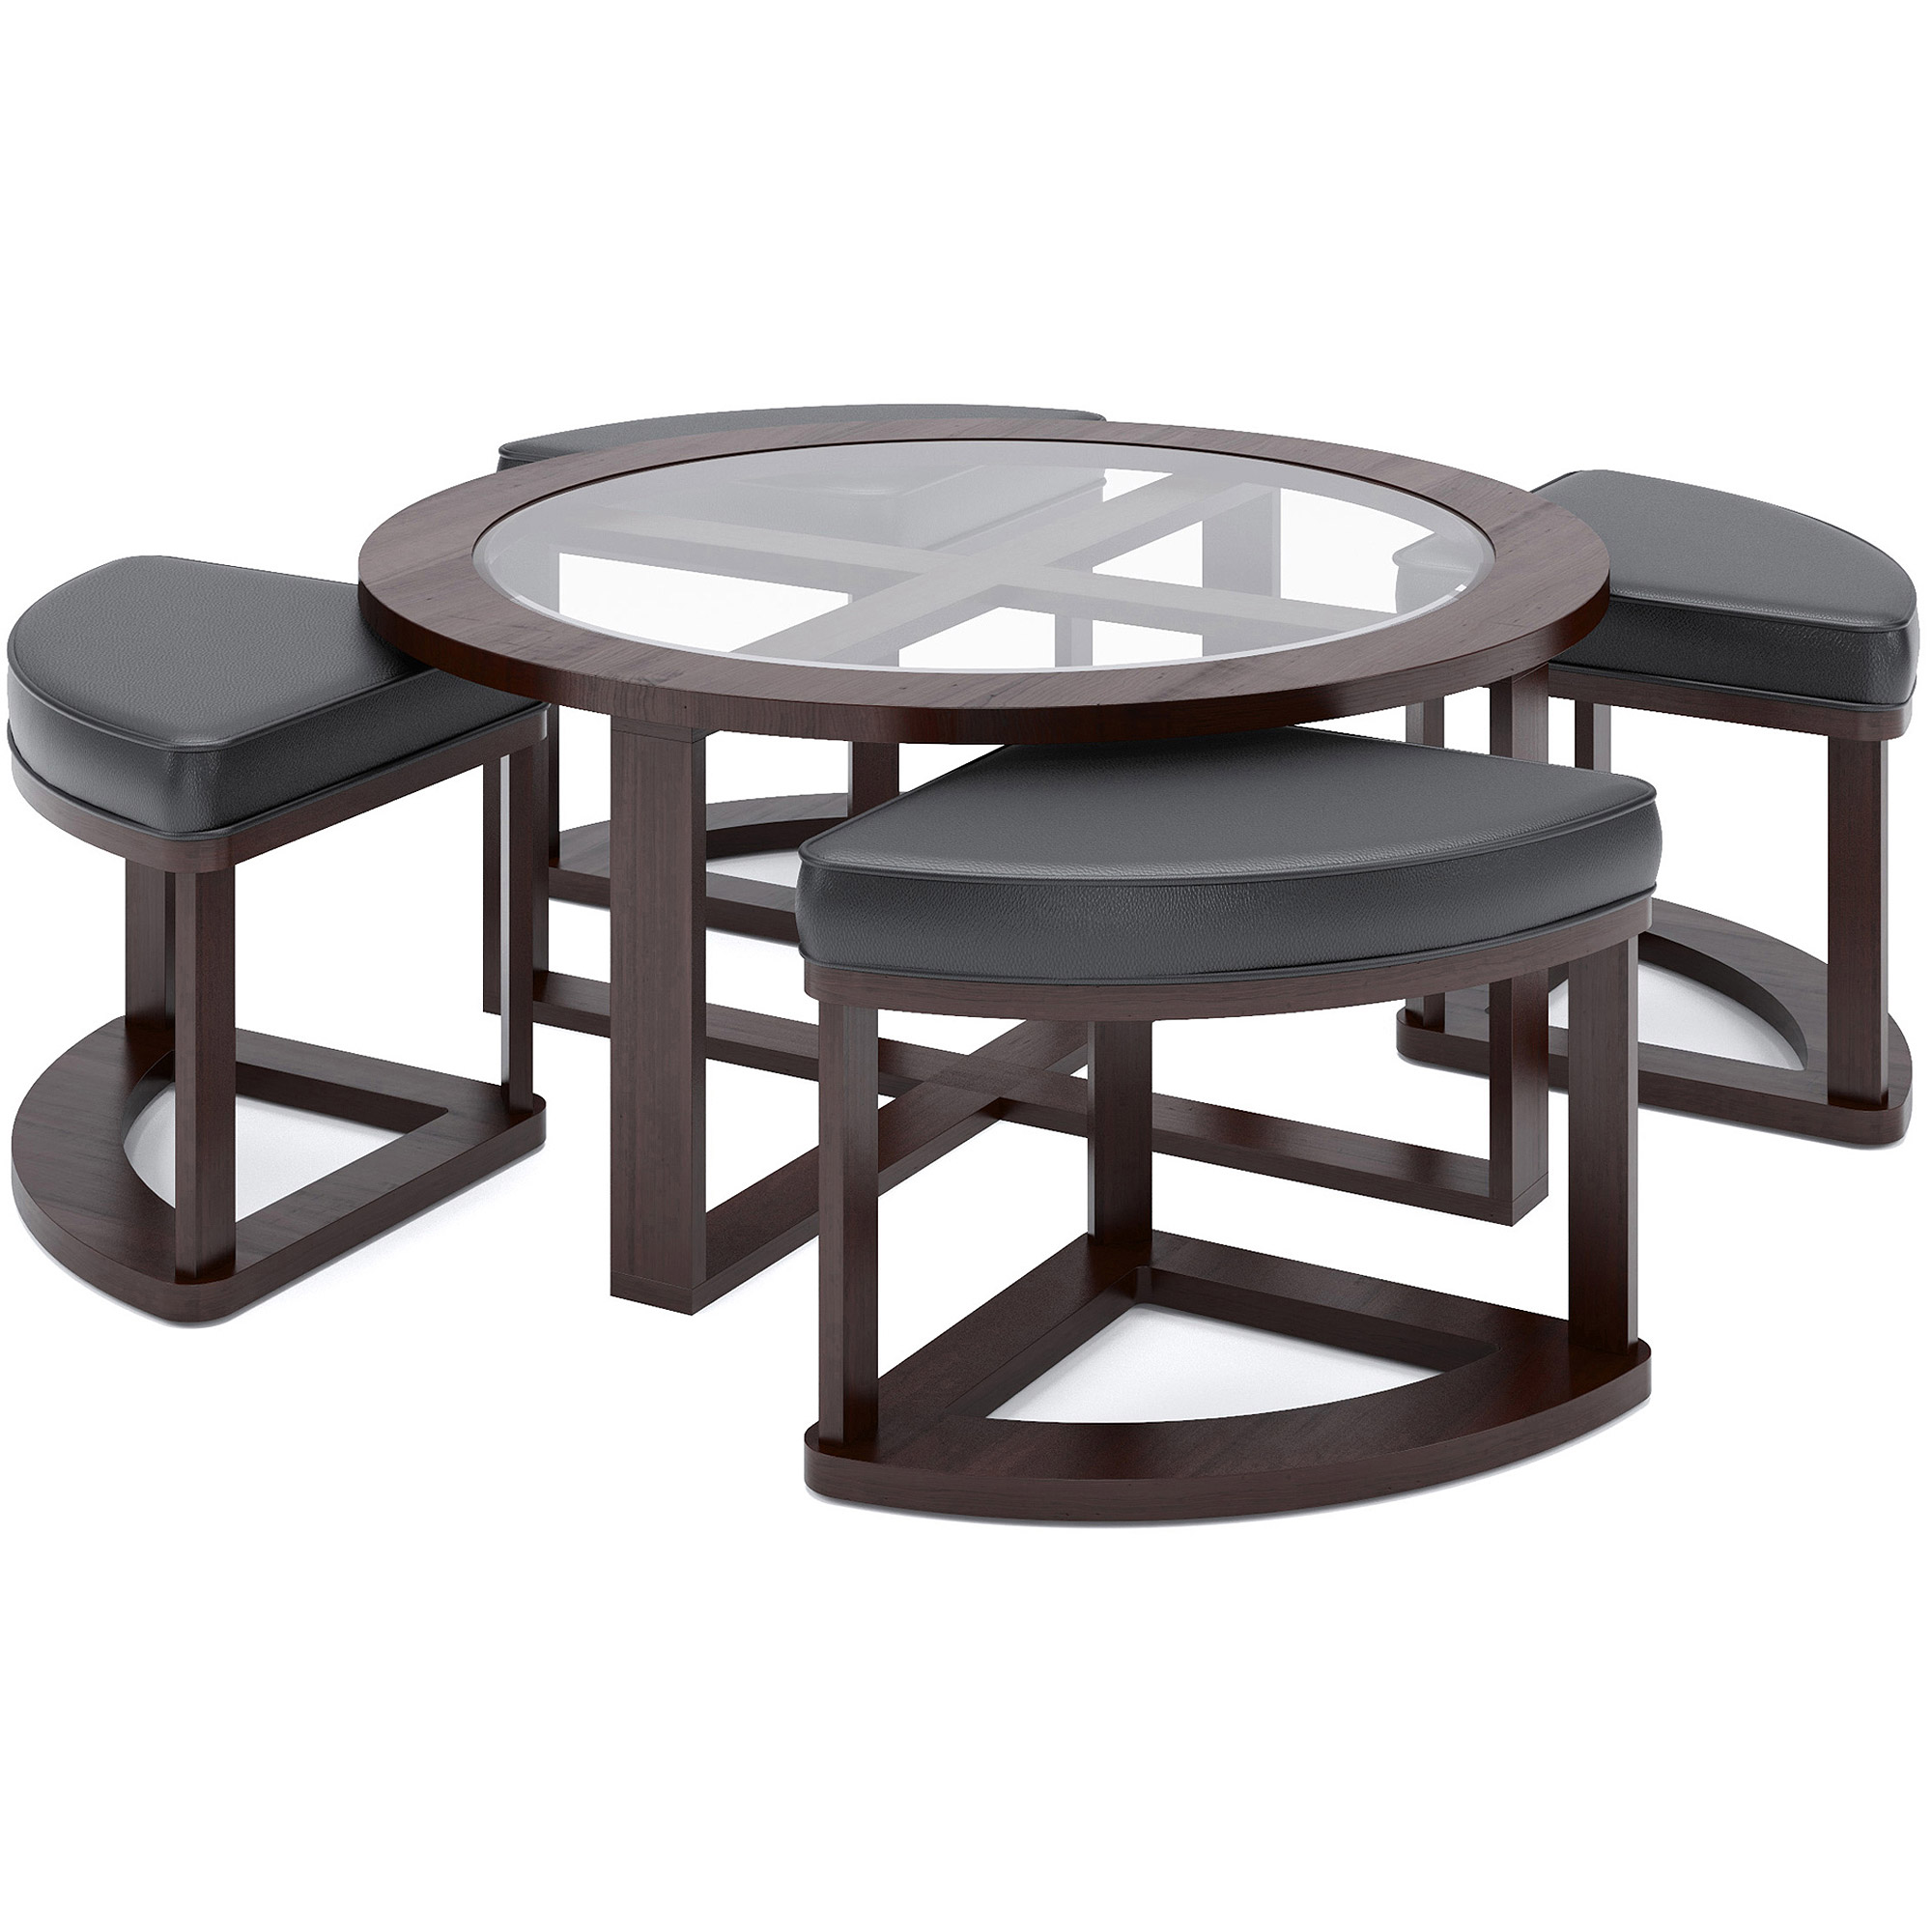 CorLiving Belgrove Stained Coffee Table with 4 Stools Dark